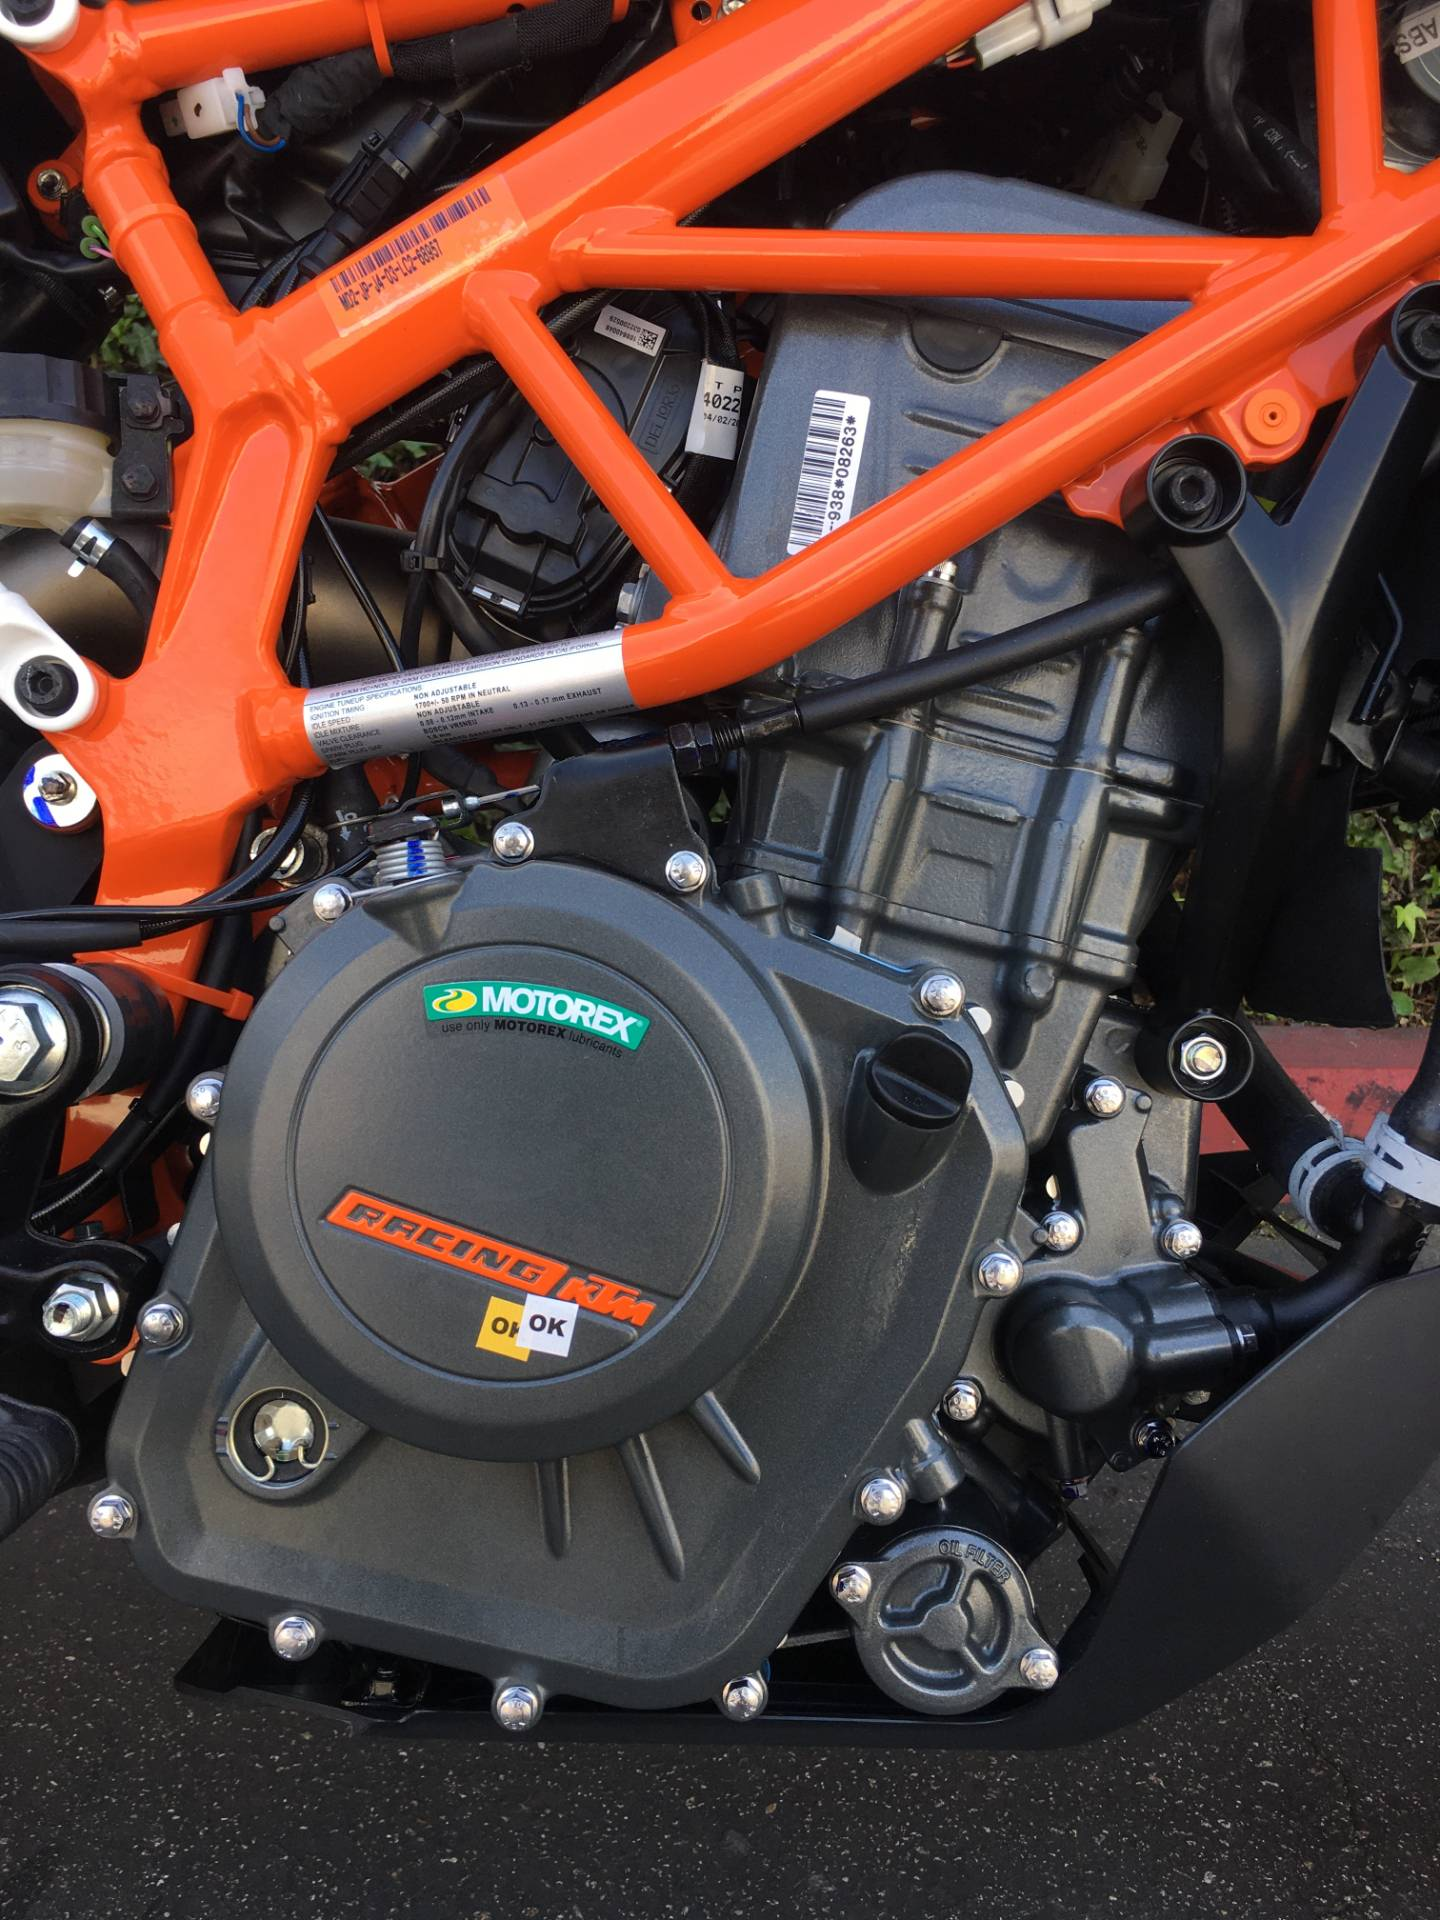 2020 KTM 390 Duke in Costa Mesa, California - Photo 5